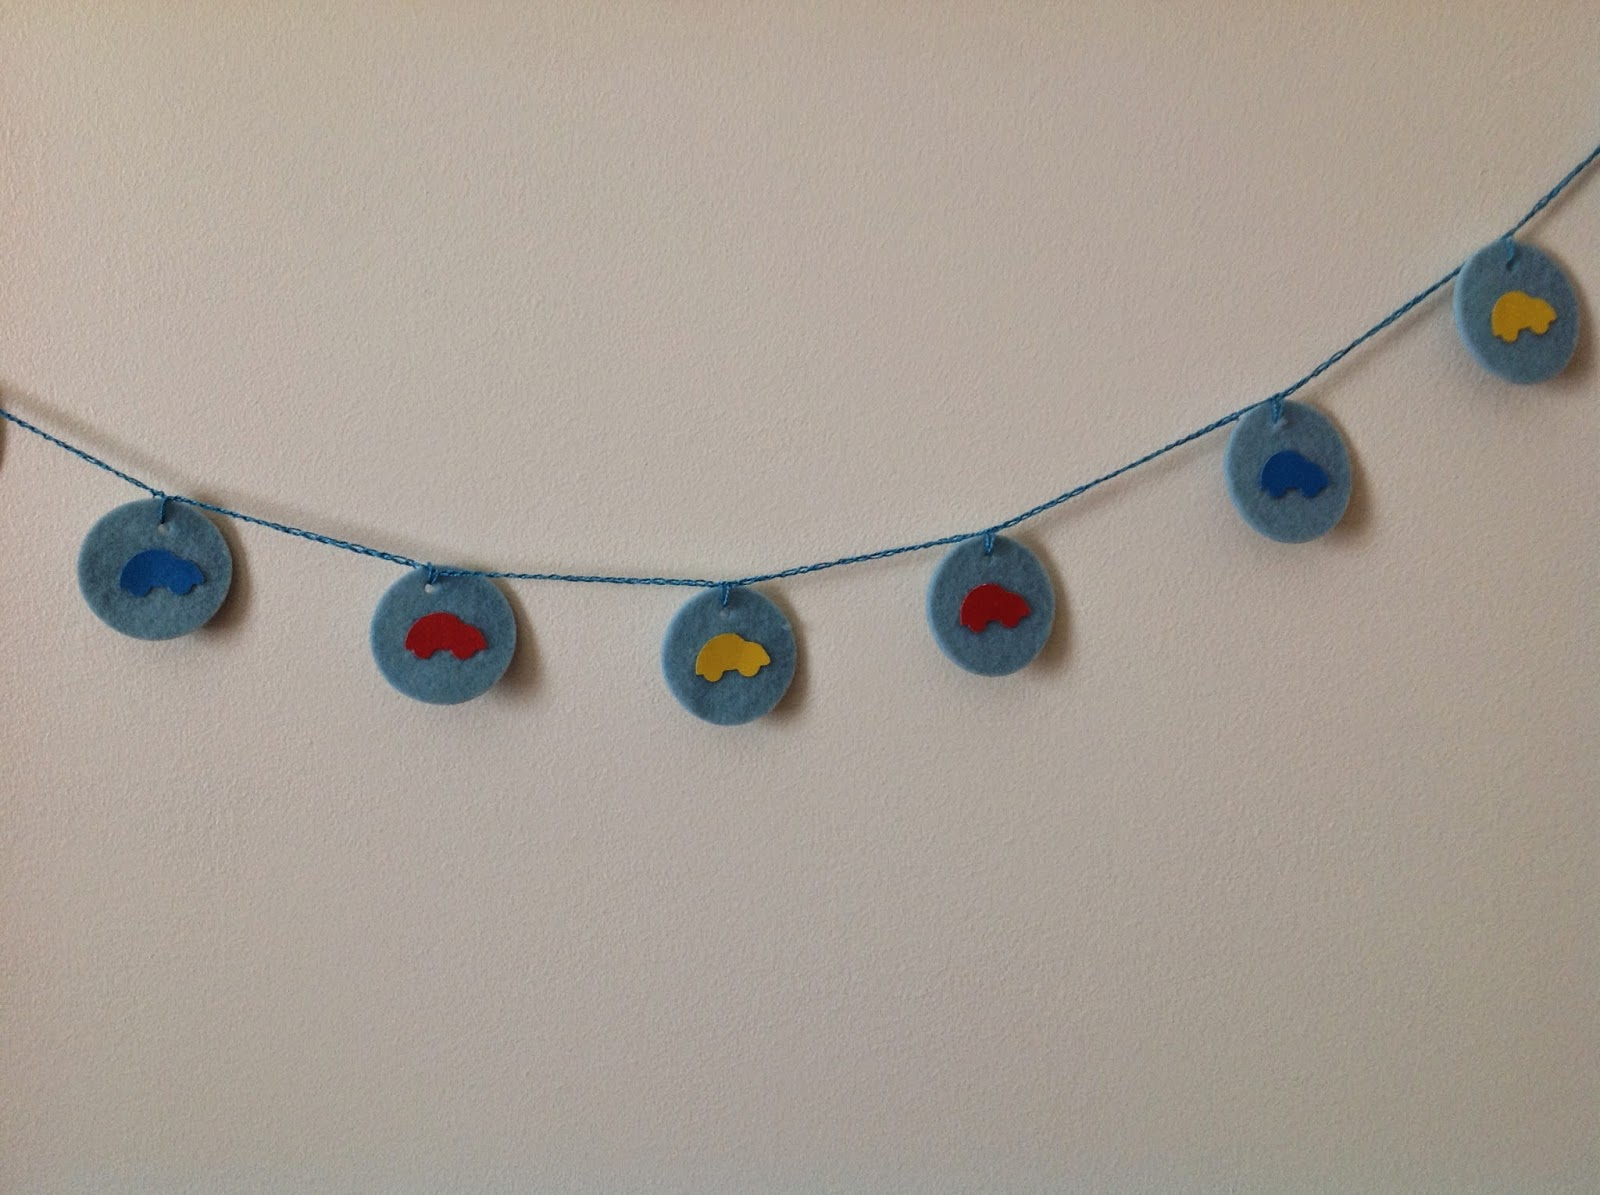 wheels on circles garland, garland, kids rooms, decorating ideas